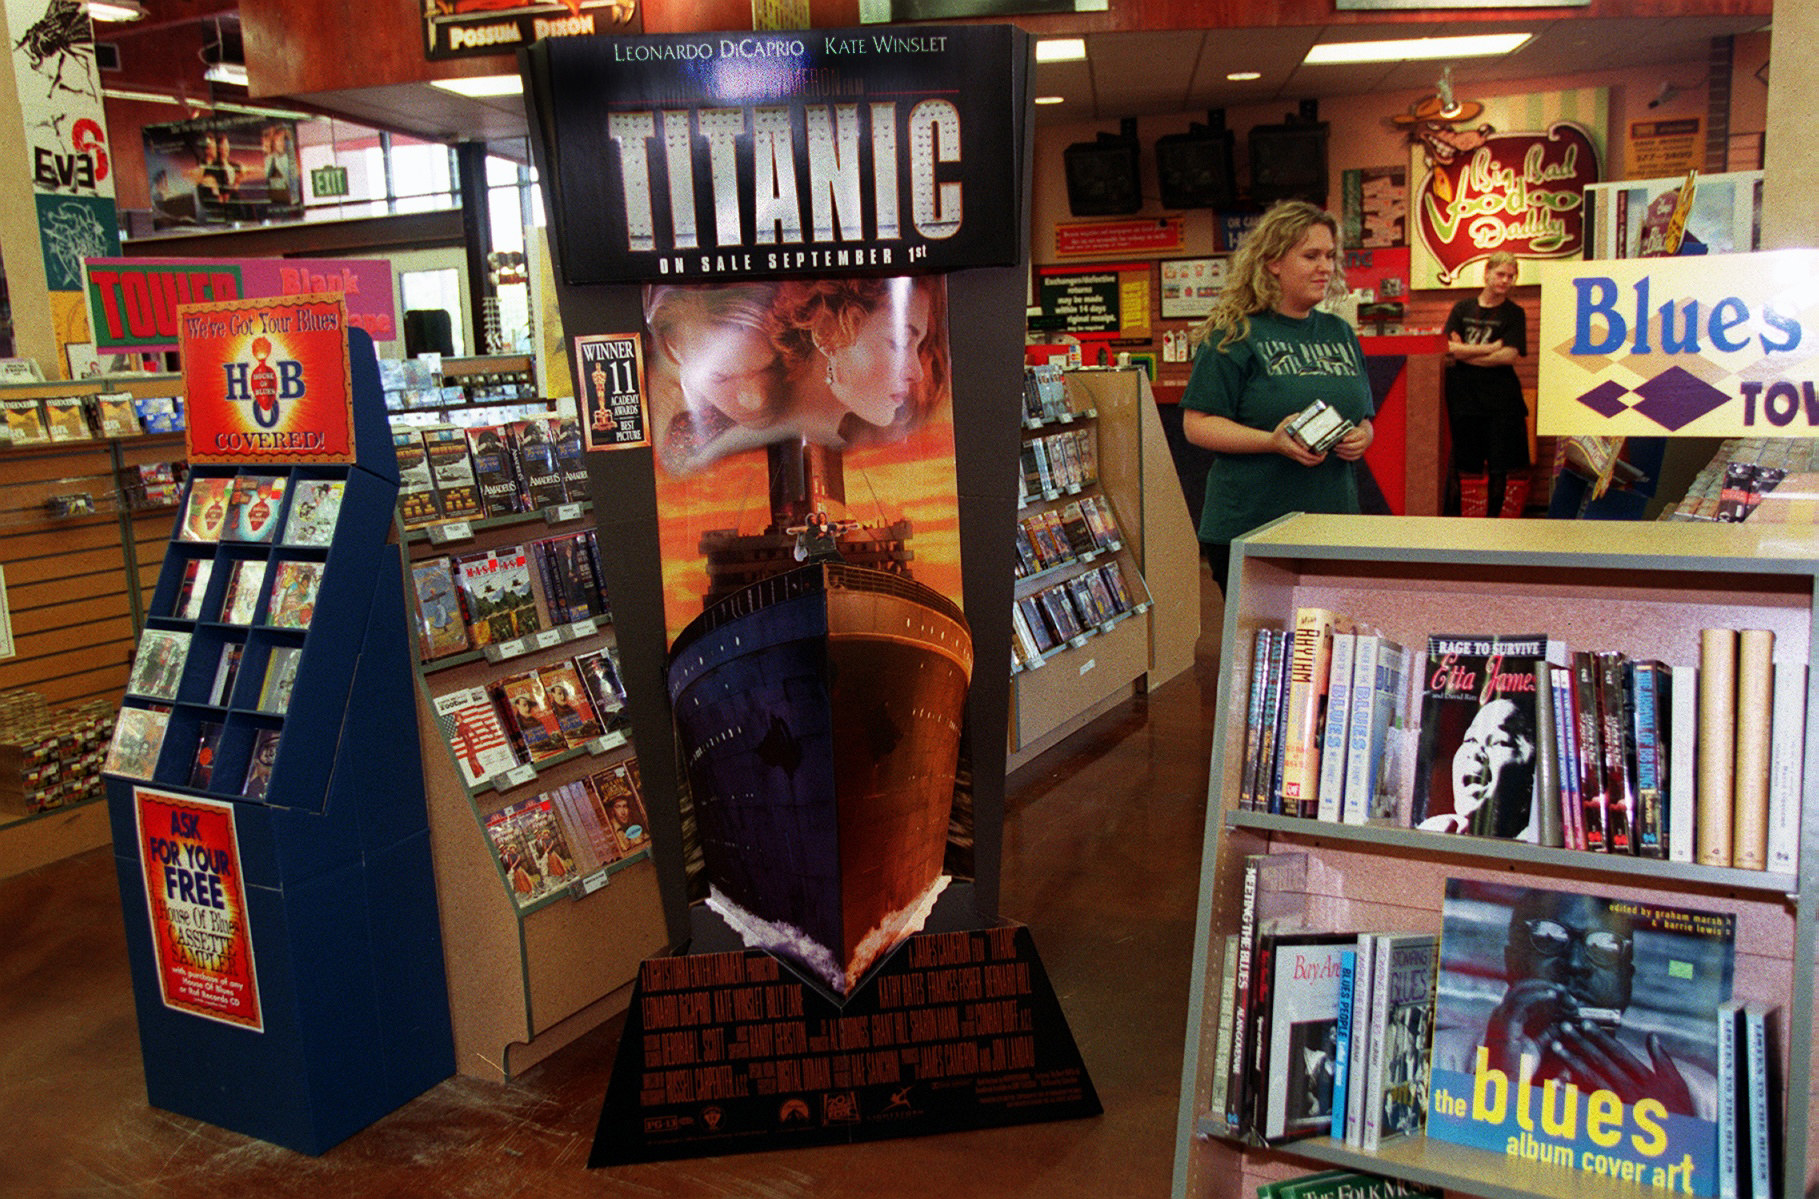 Titanic video promotional cutout inside of a Tower Record